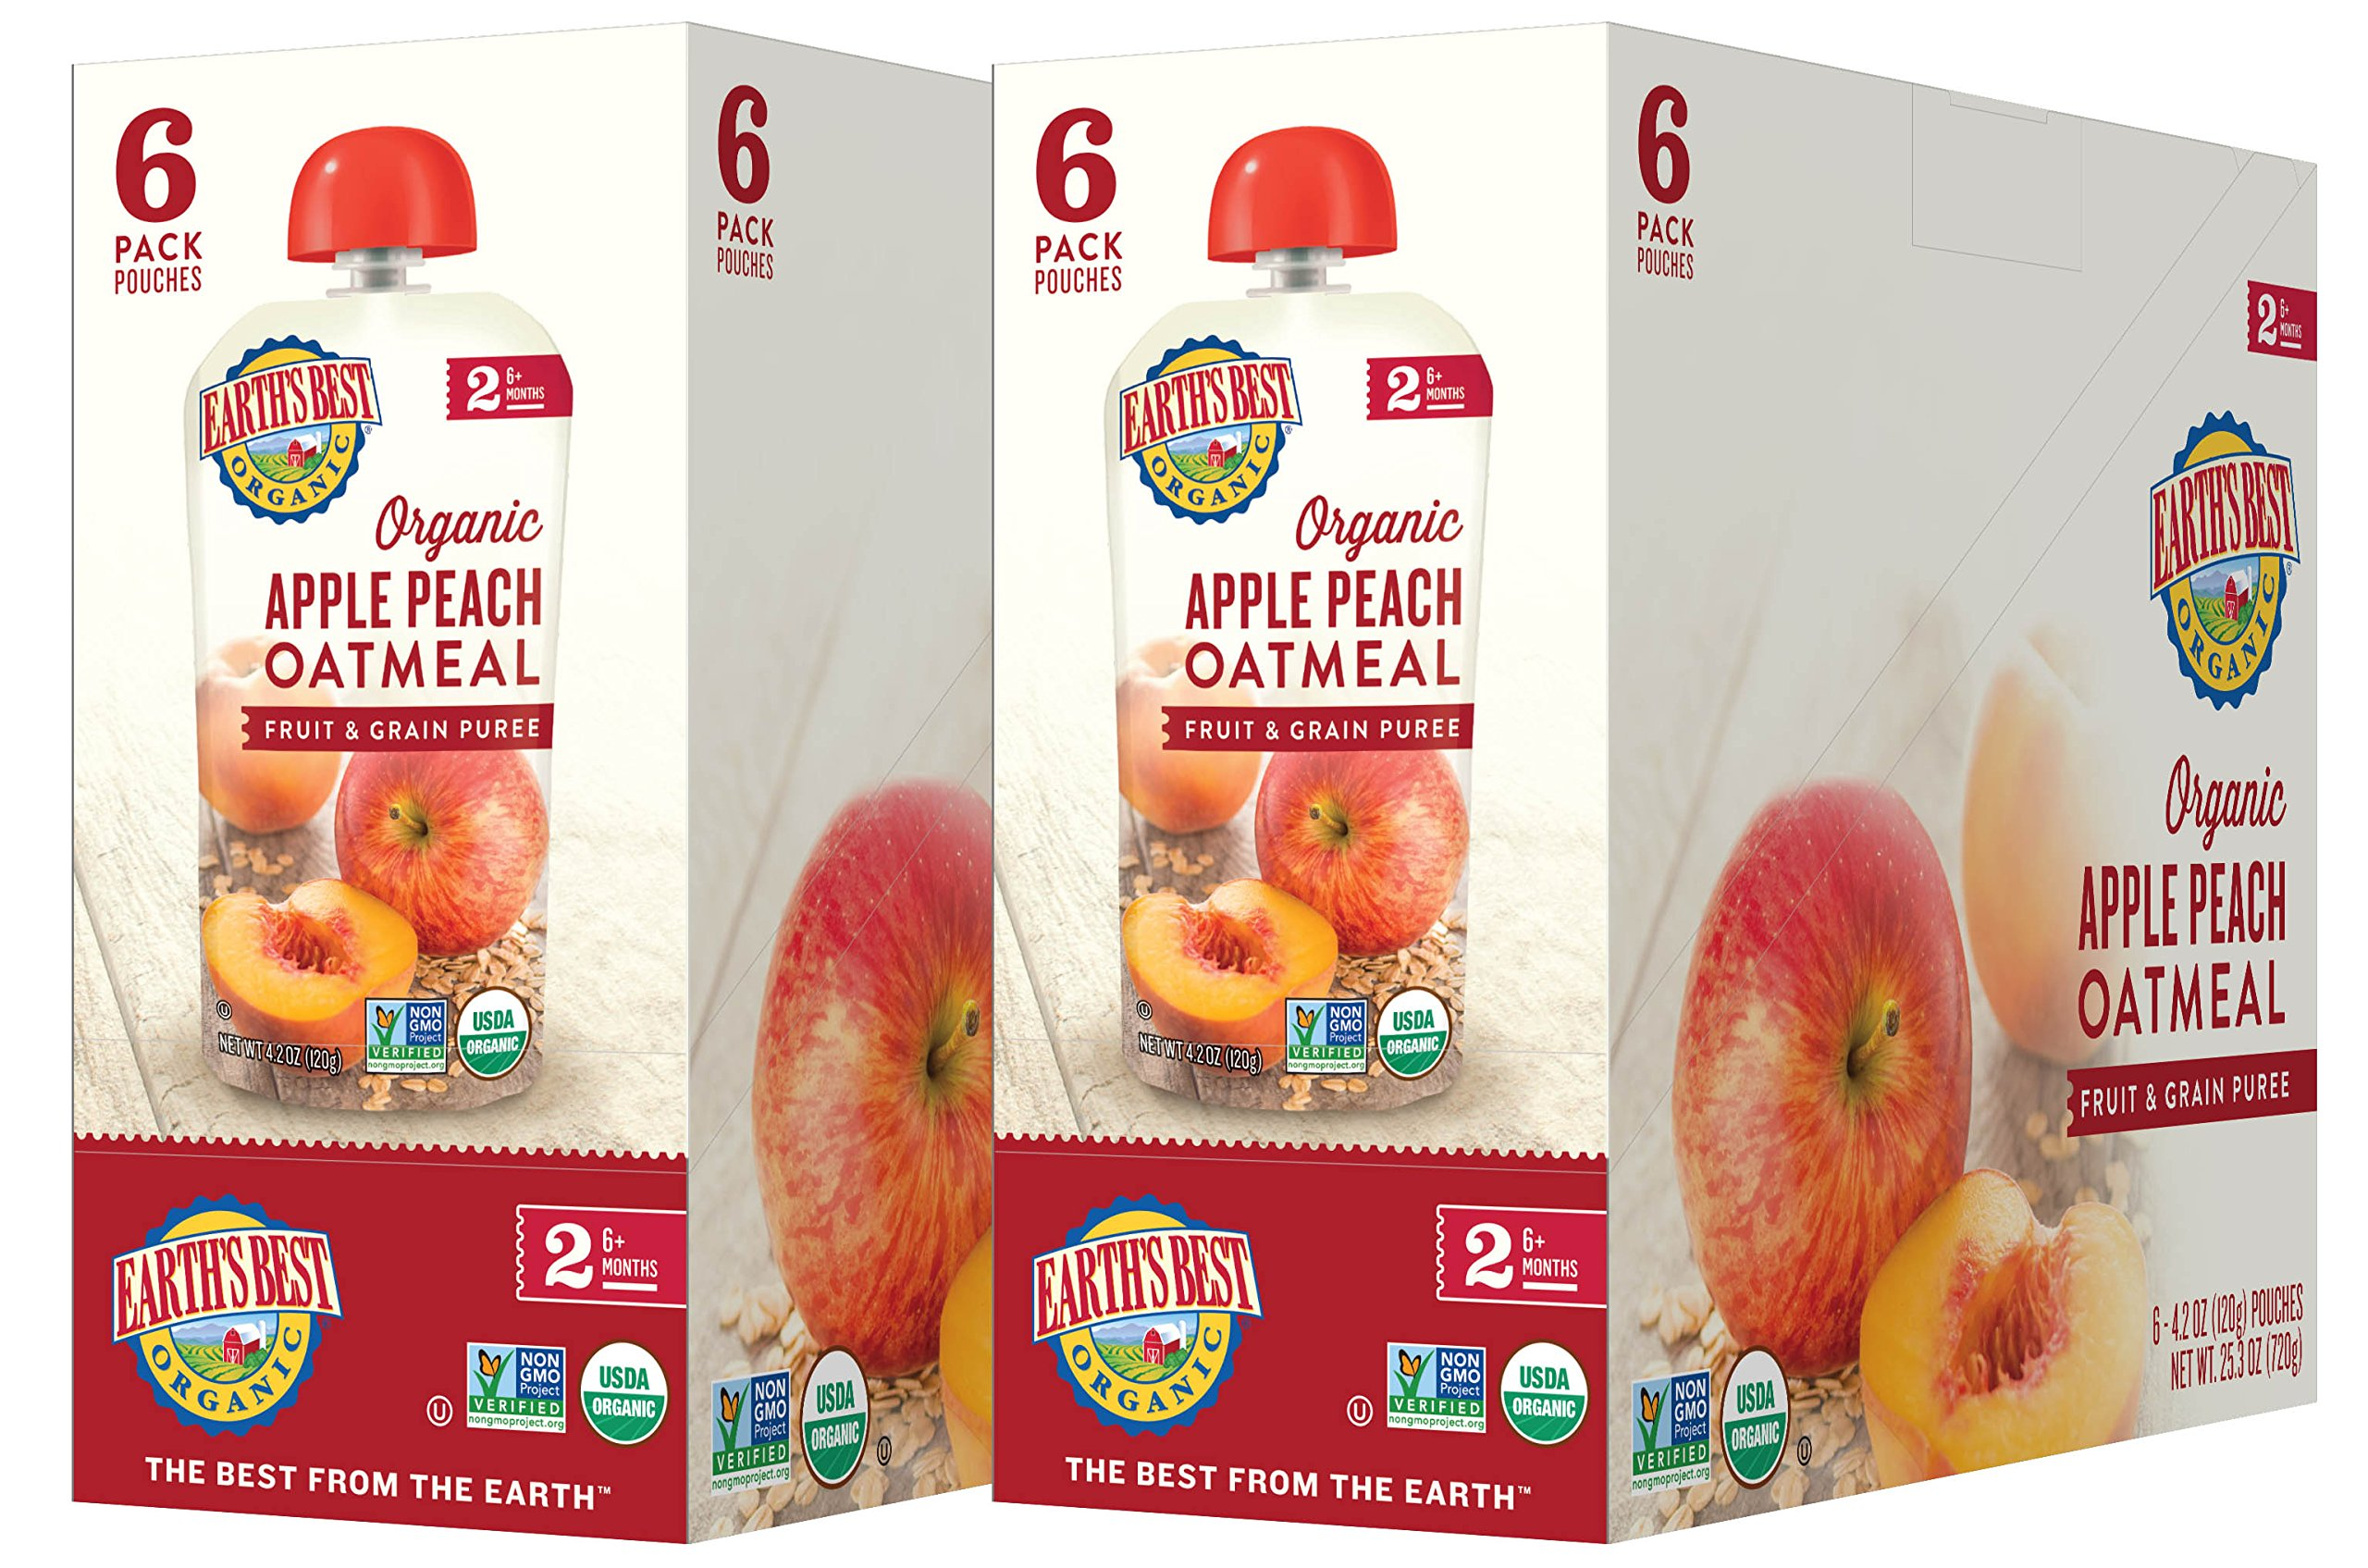 Earth's Best Organic Stage 2 Baby Food, Apple Peach and Oatmeal, 4.2 oz. Pouch (Pack of 12) by Earth's Best (Image #7)